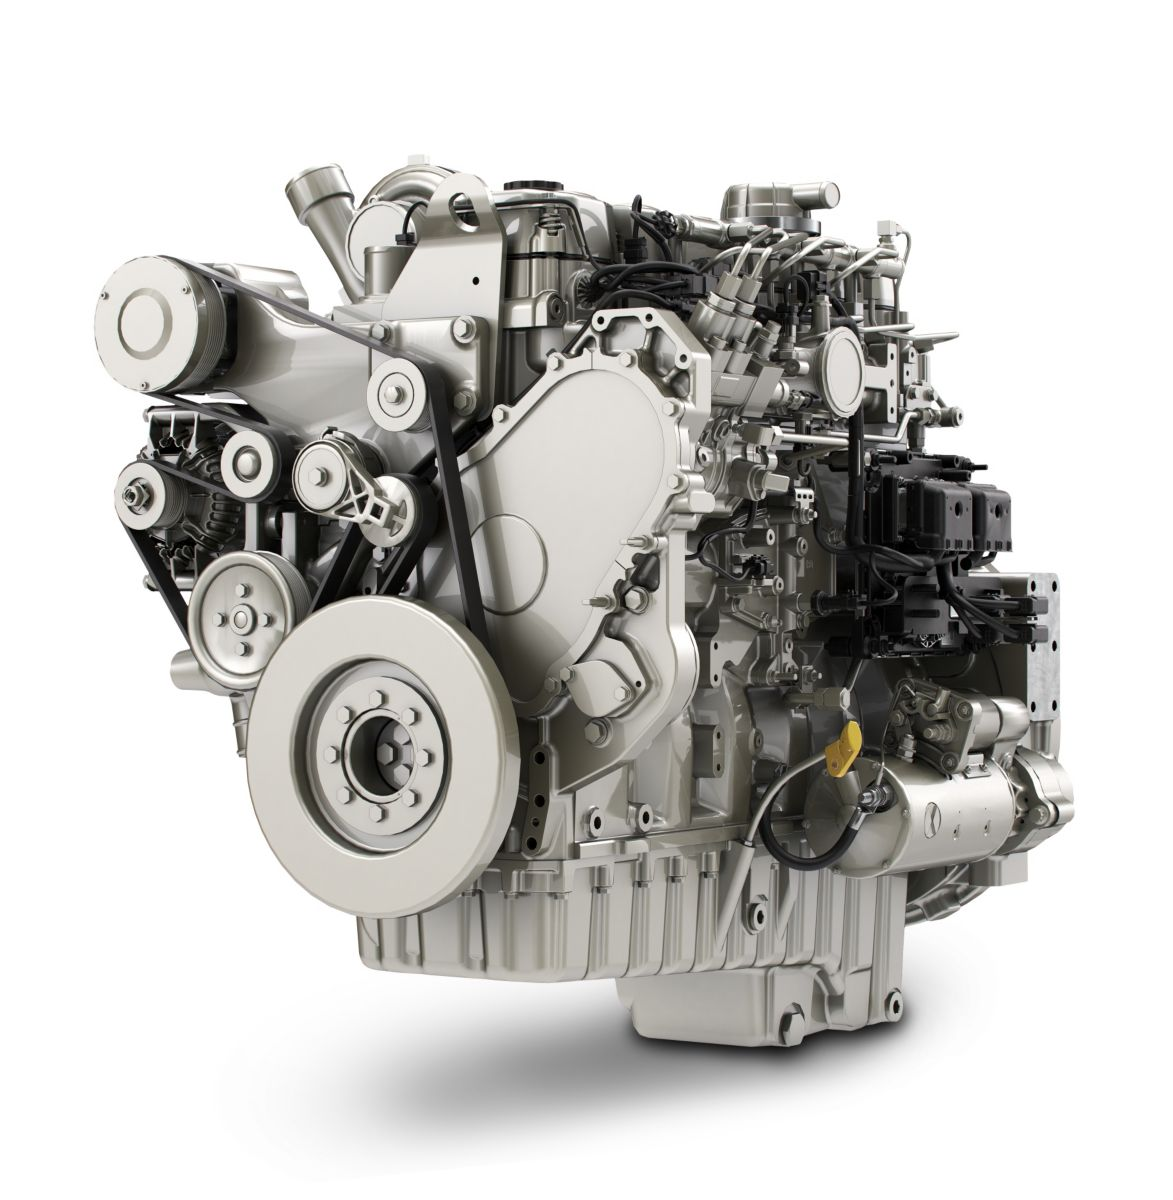 Our new 1706J engine